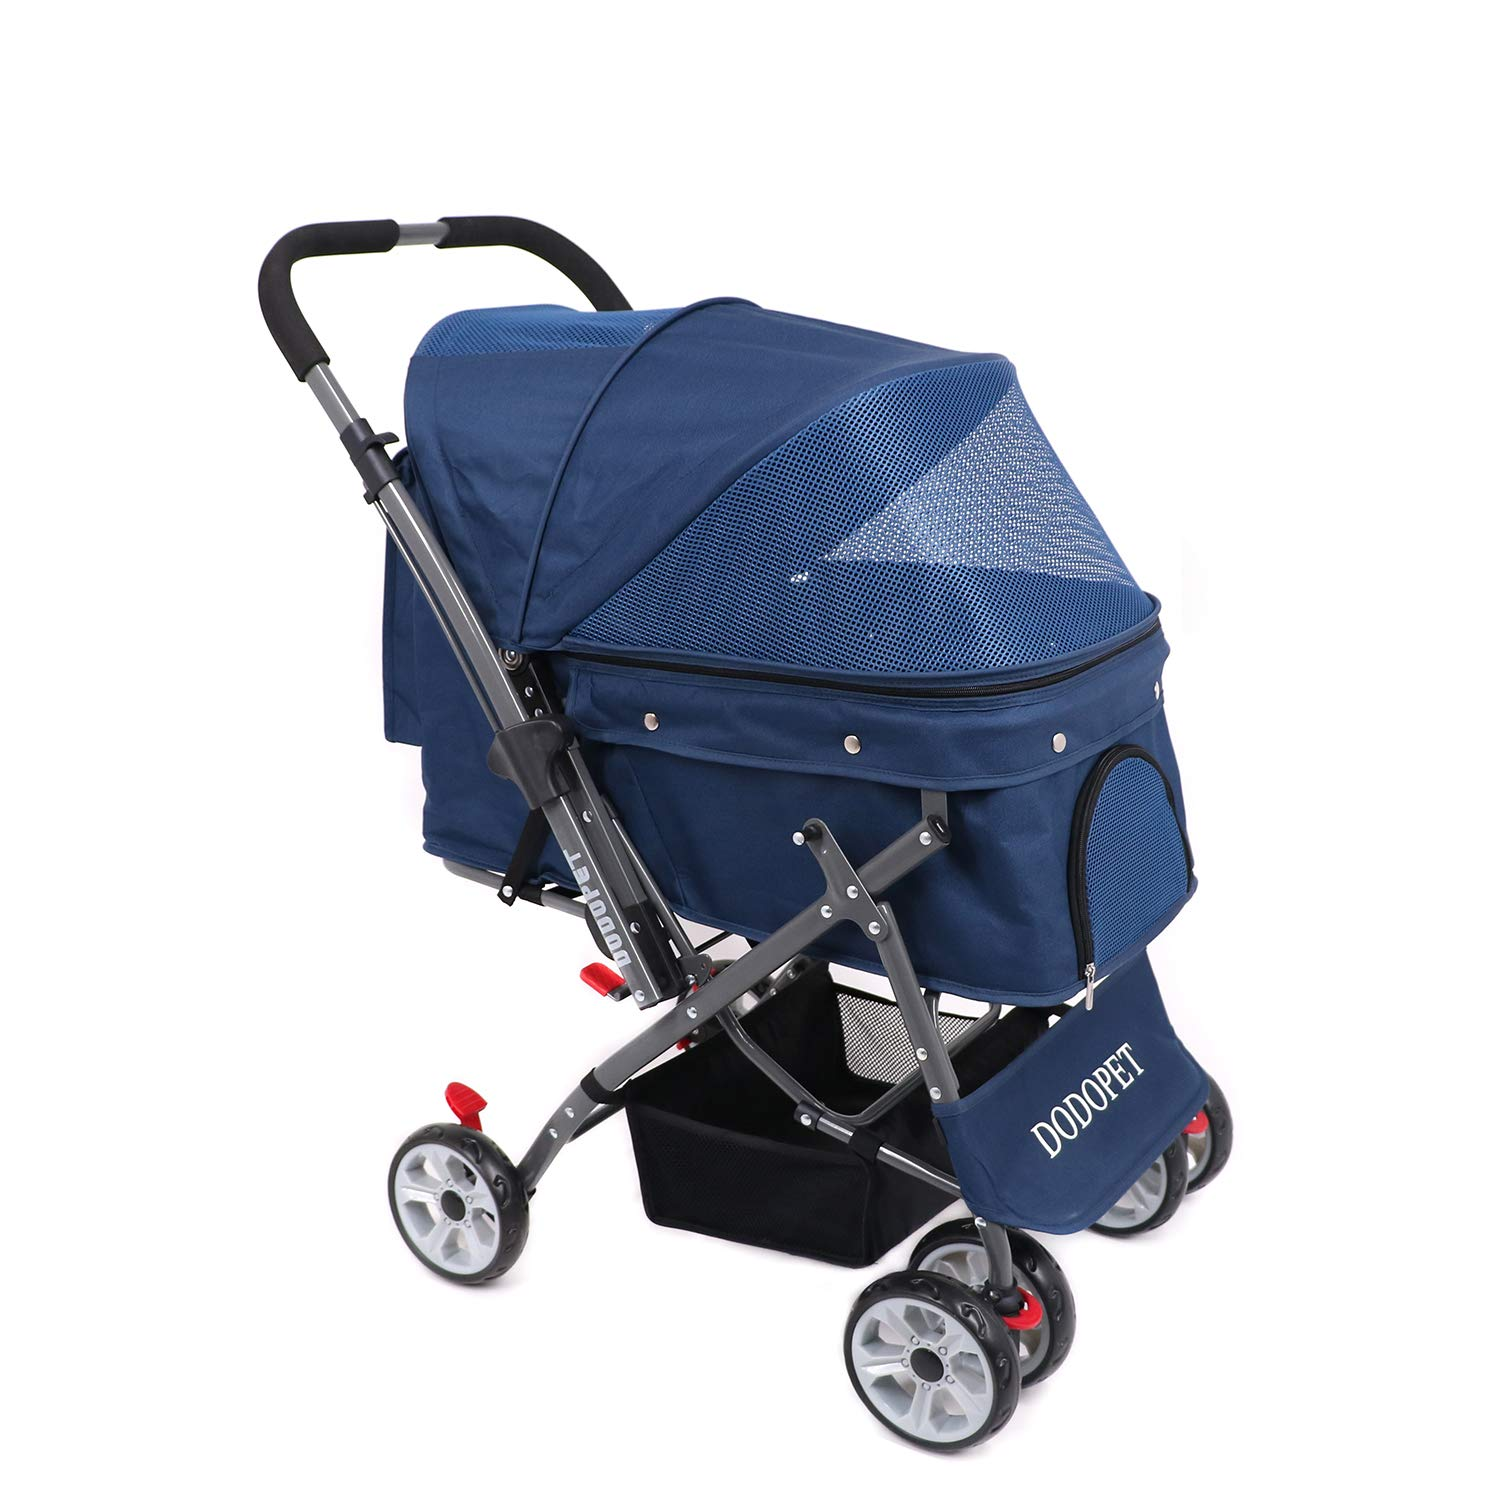 DODOPET - Dog/Cat/Pet Stroller, 4 Wheel Dog Cage Stroller, Reversible Handle Bar, Pet Travel Folding Carrier, Strolling Cart, Strong and Stable, for Medium Pets Up to 50 lbs, Navy Blue